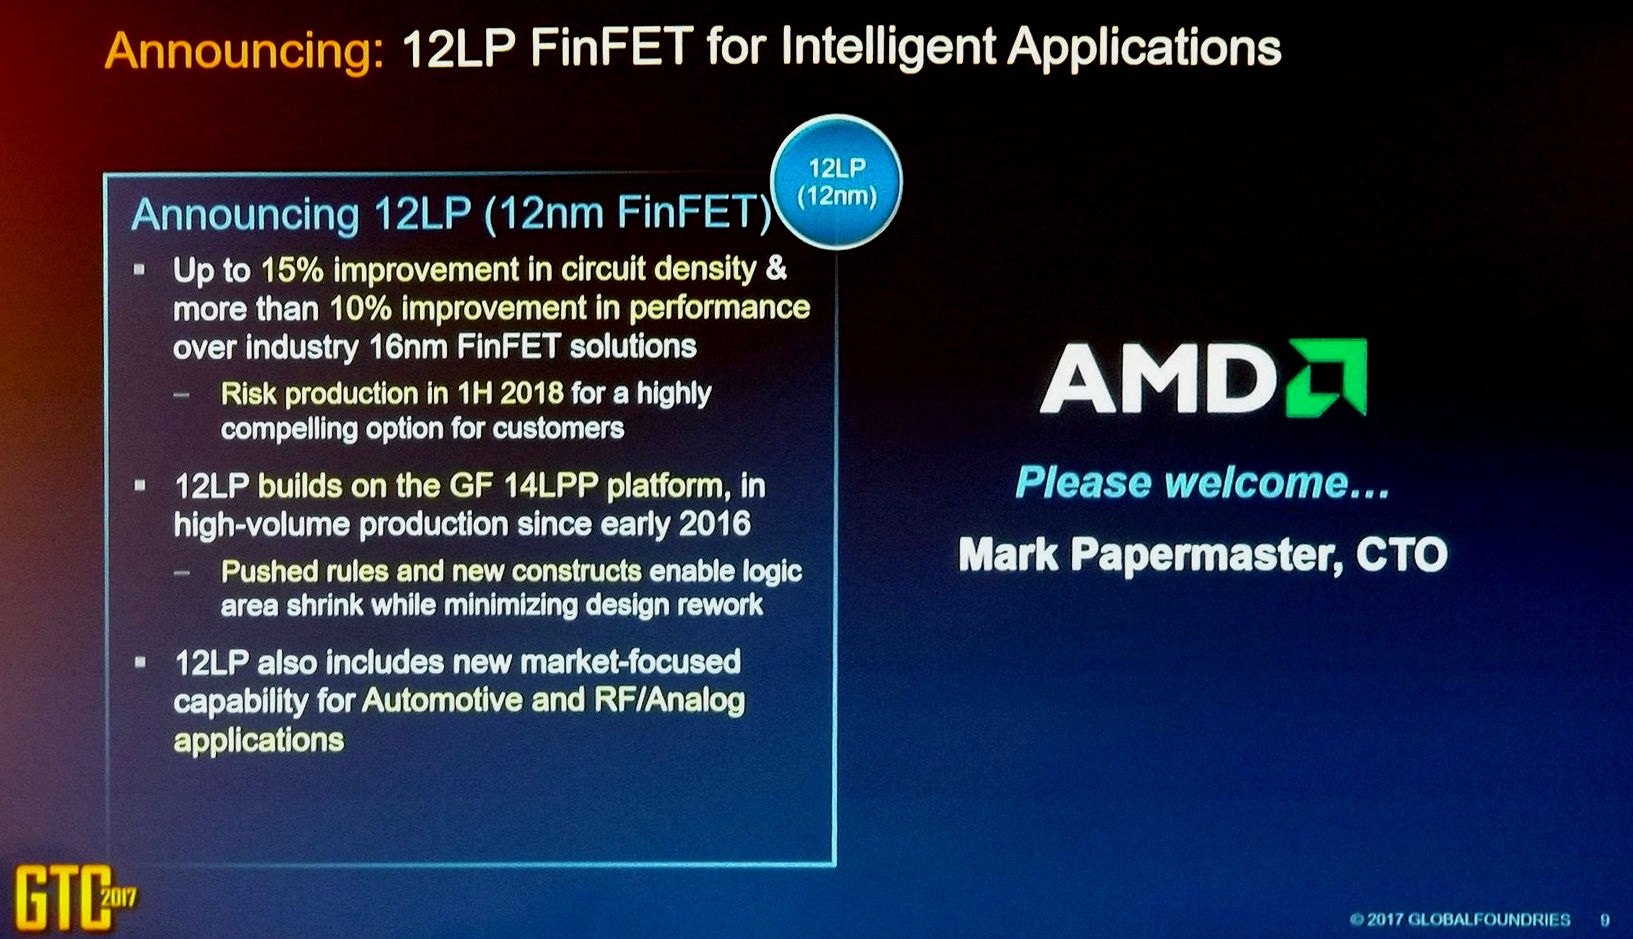 Picture Will Allow Amd To Up Squeeze More Cores Or Cache Amd Ryzen Vs Intel Unity Development Unity Forum Ryzen 1700 Vs 7700k Premiere Pro Ryzen 1700 Vs 7700k 3ds Max dpreview Ryzen 1700 Vs 7700k